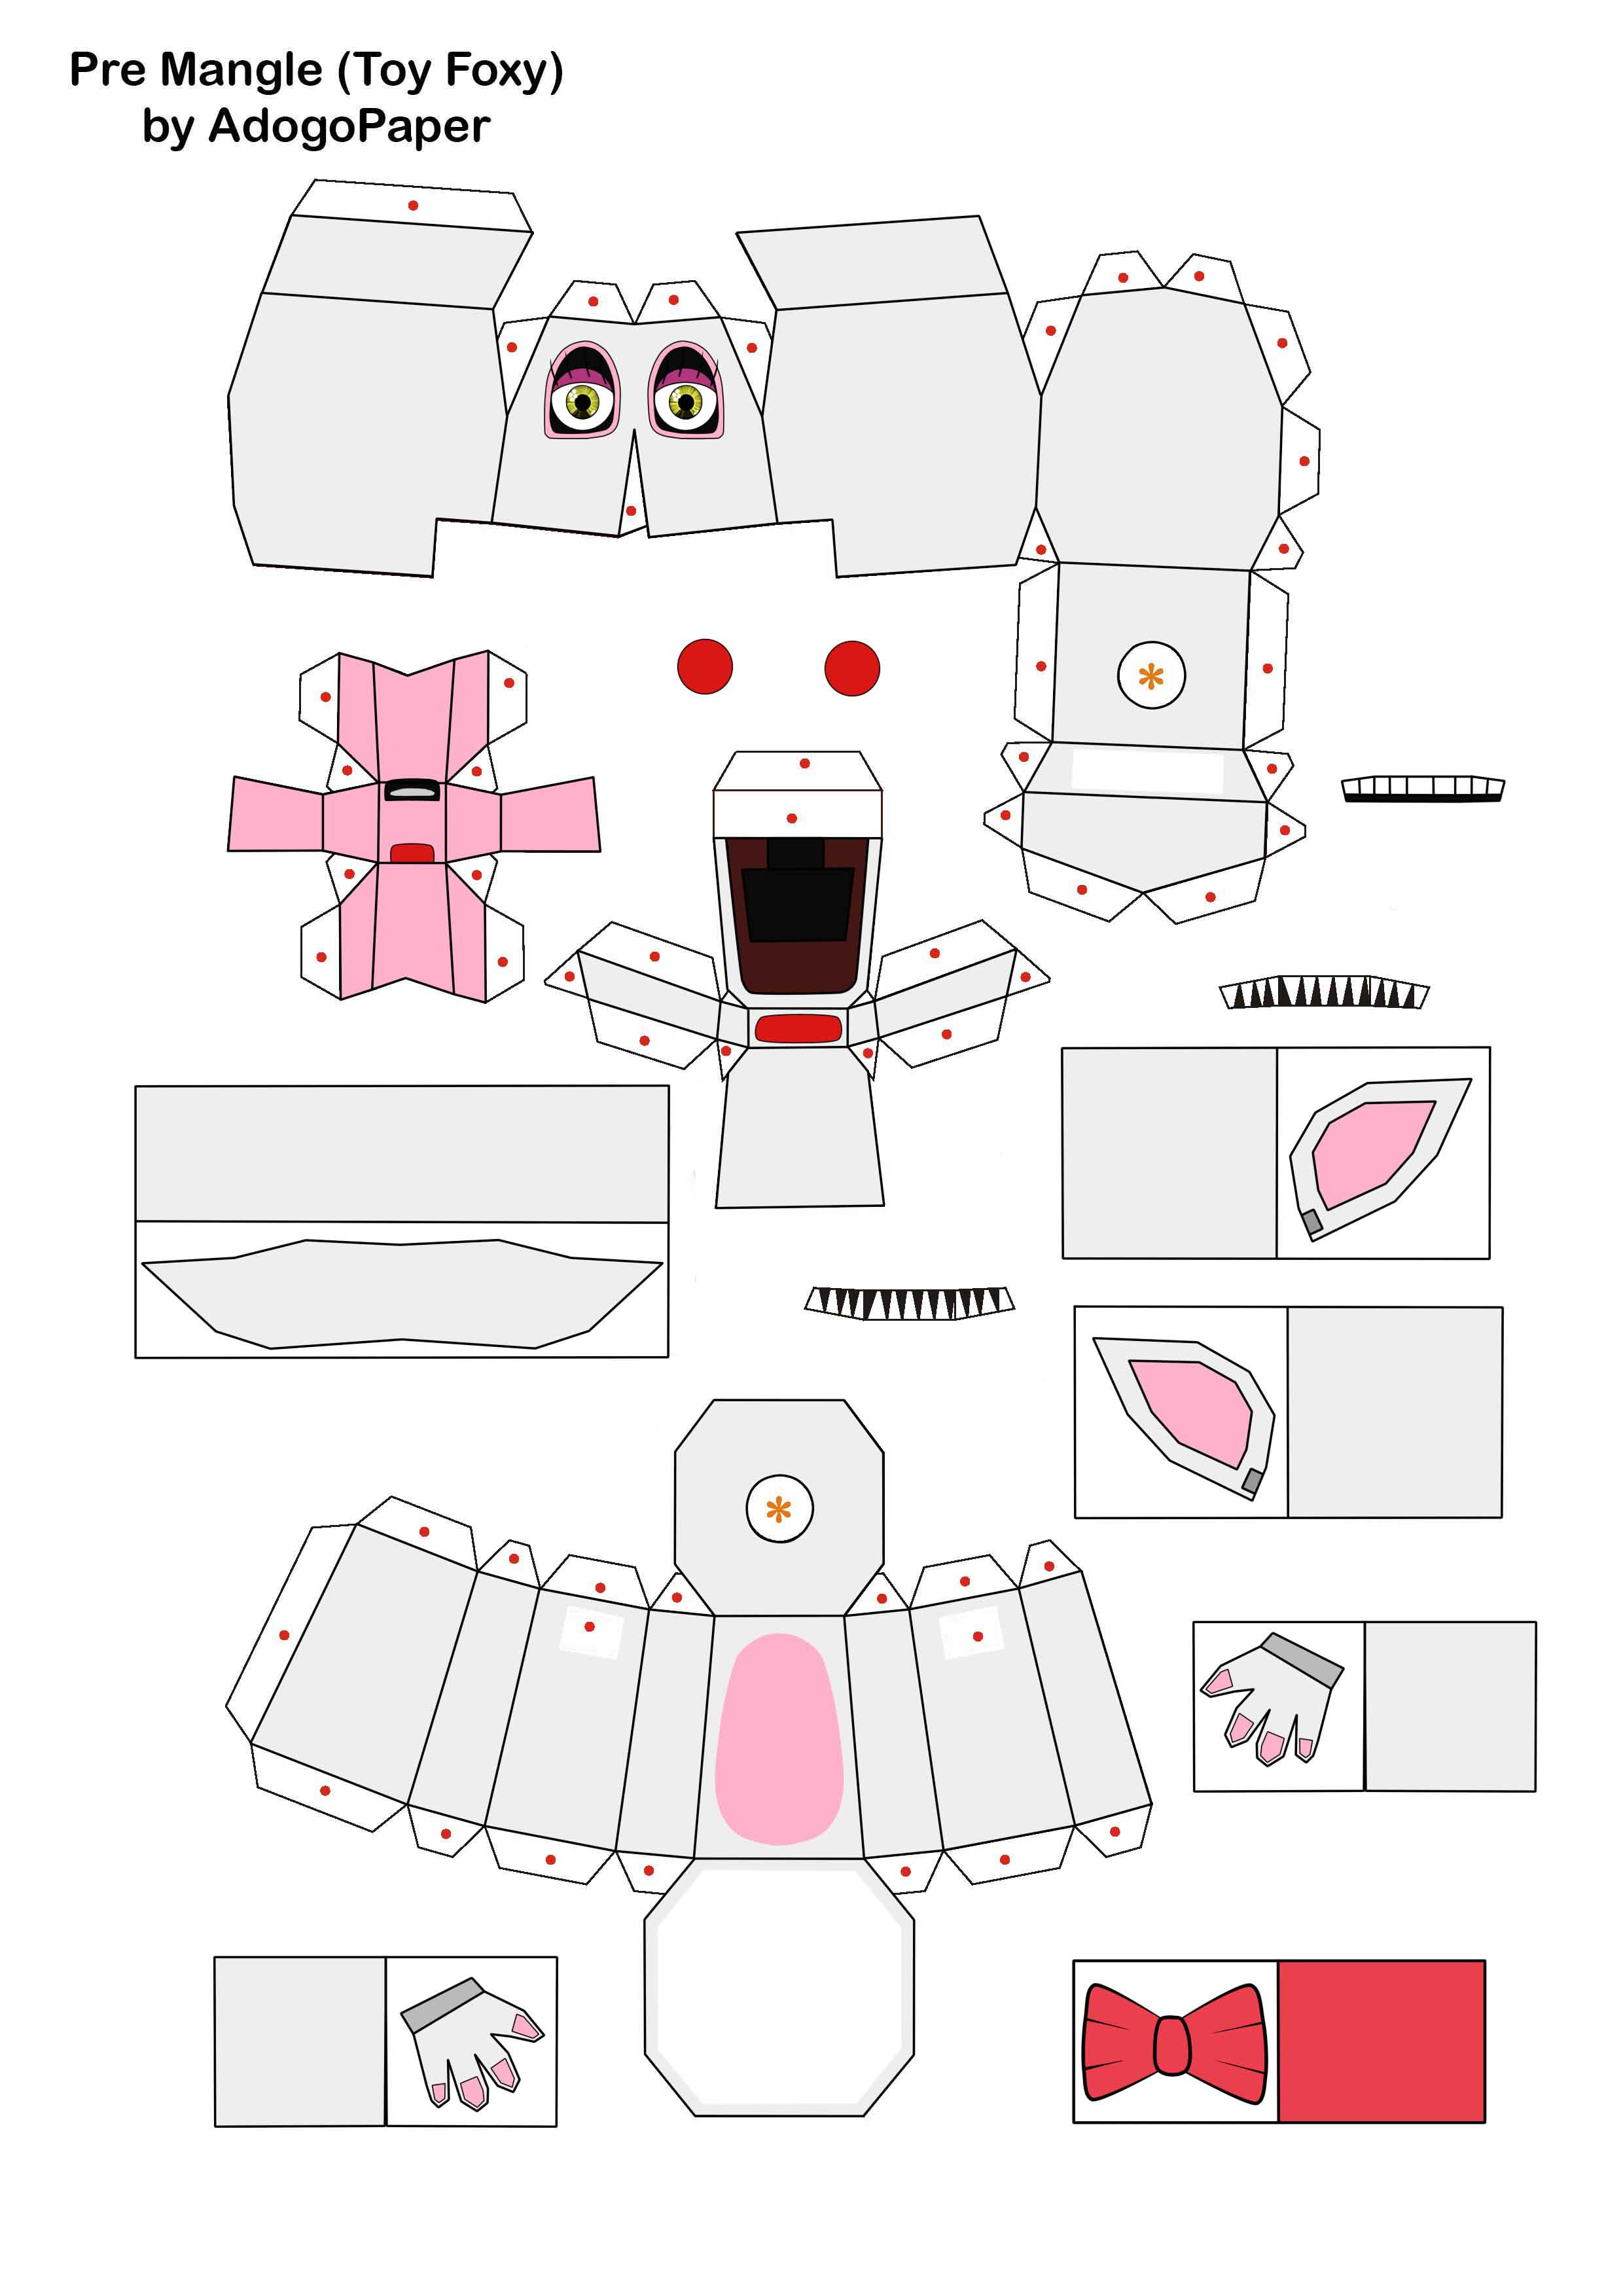 five nights at freddy's 2 pre-mangle papercraft P1 by Adogopaper on ...